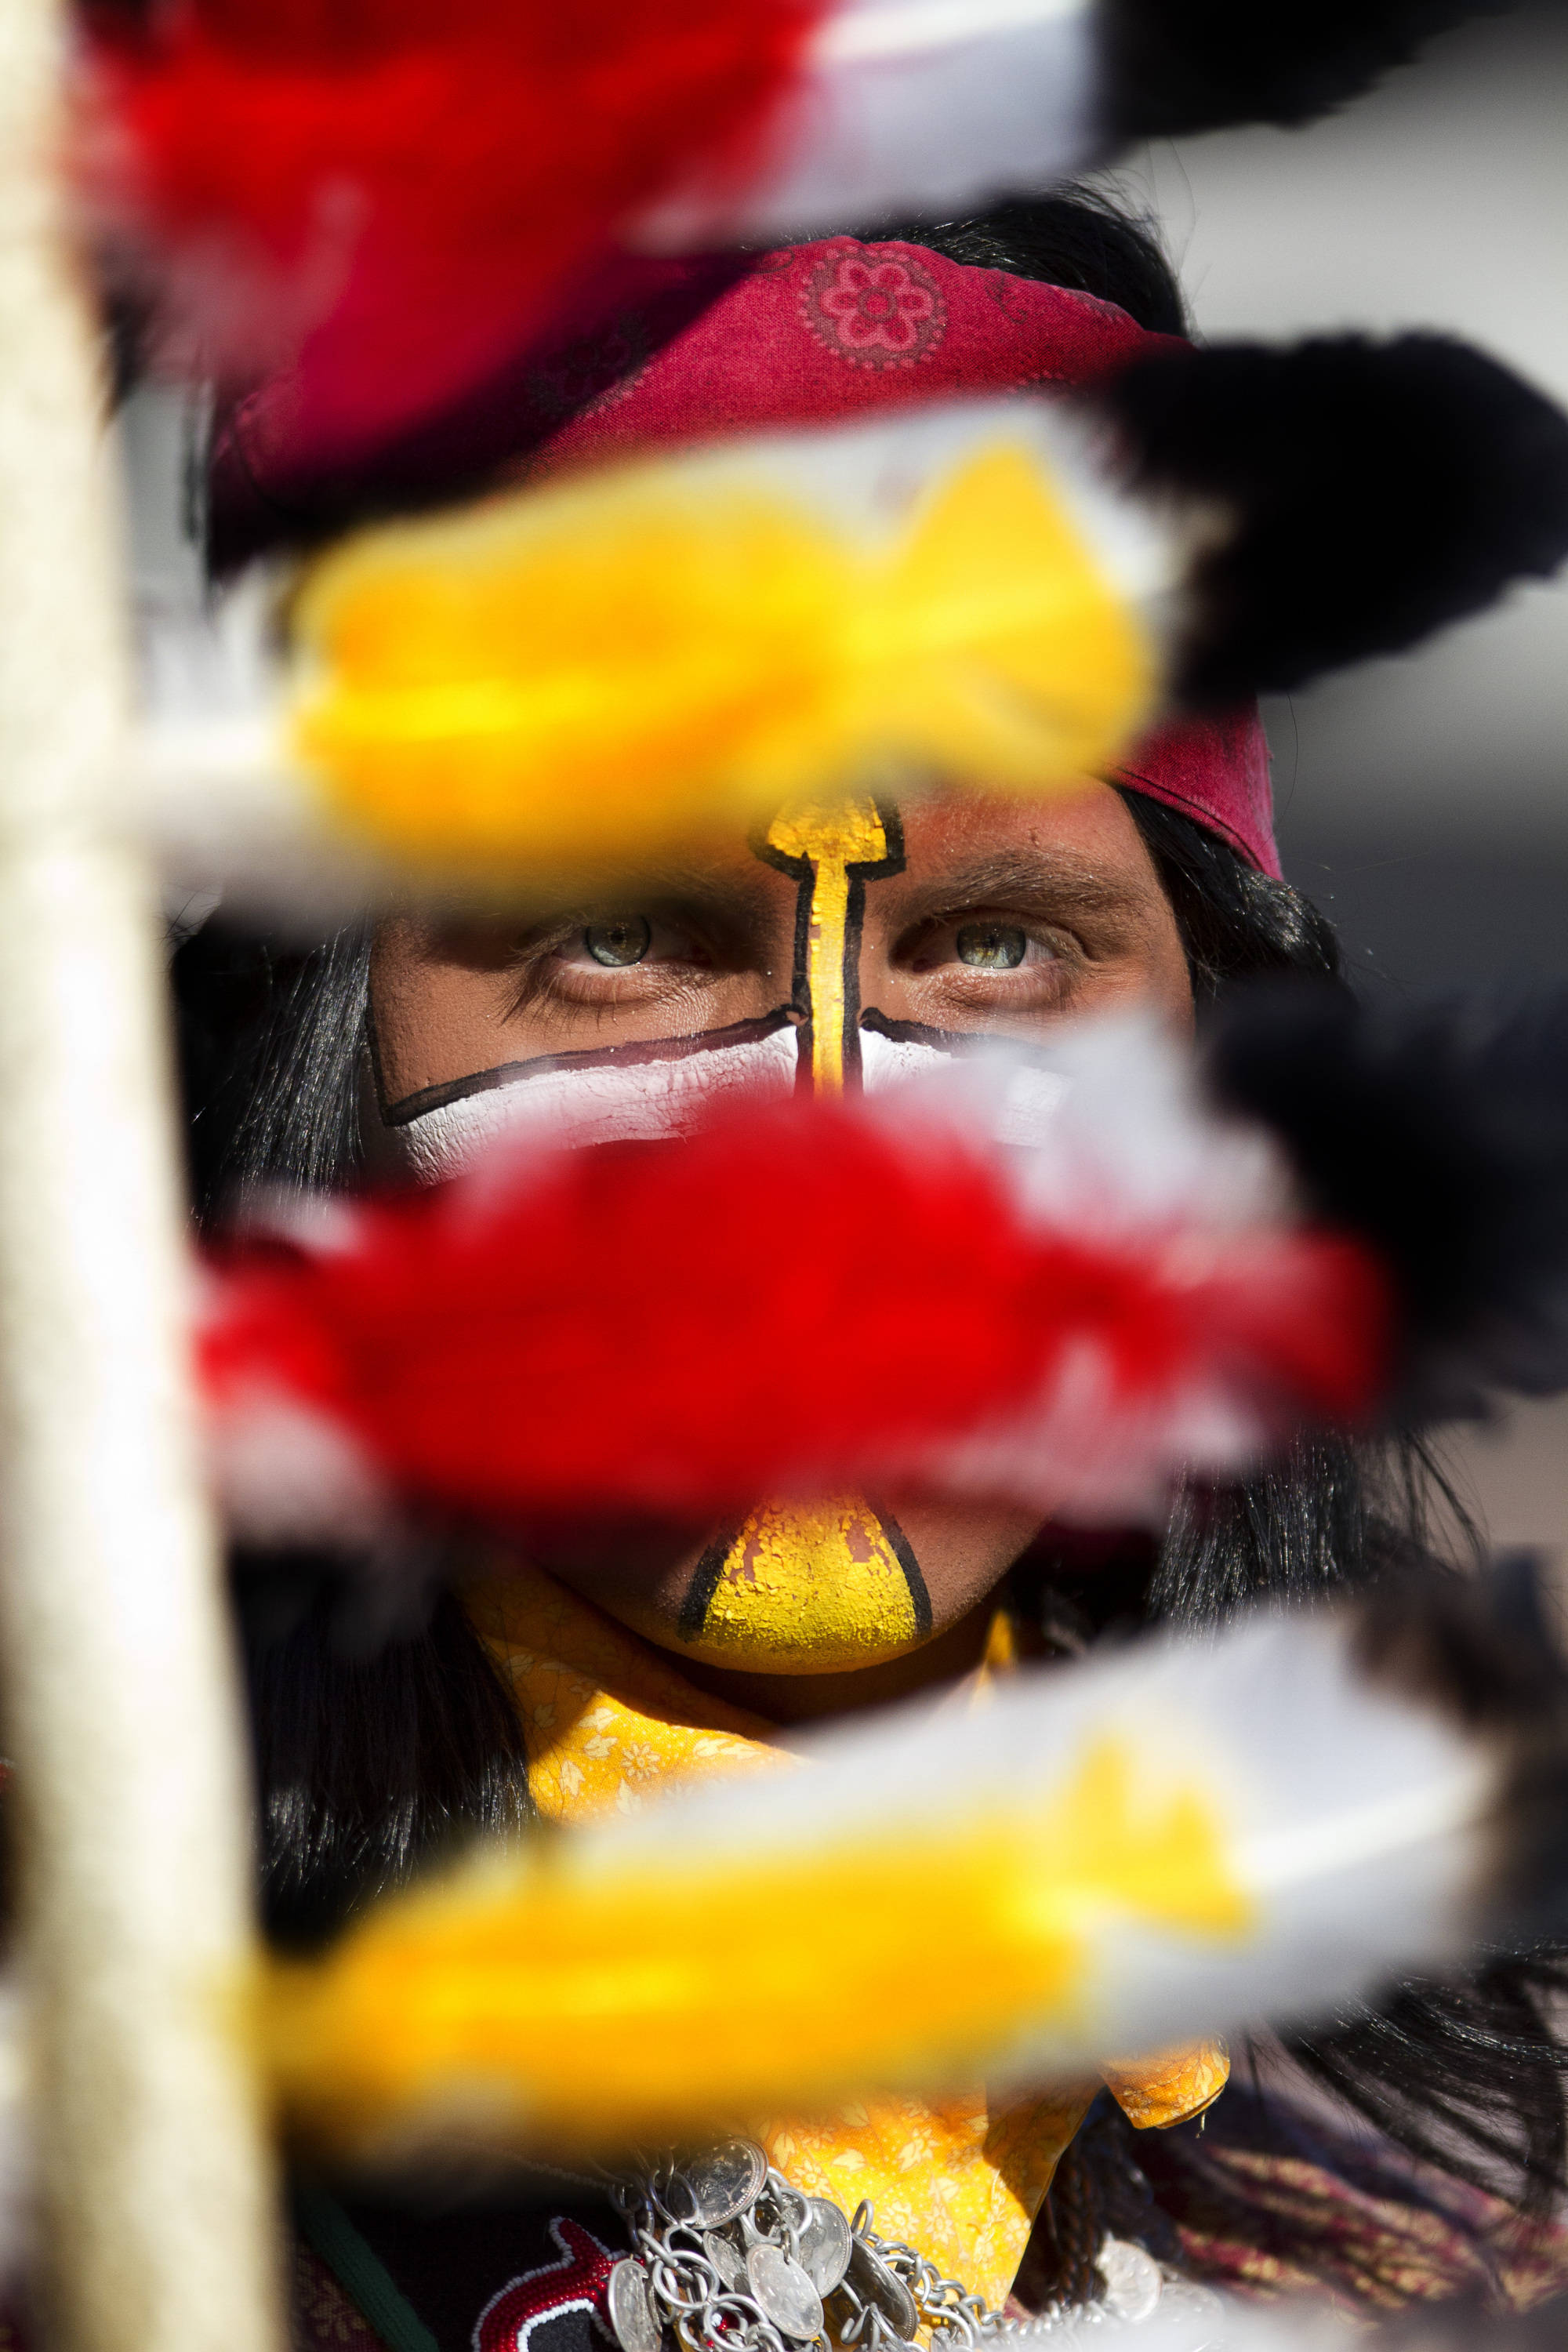 Chief Osceola on the sidelines during the football game against Maryland in Tallahassee, Florida on October 22, 2011.